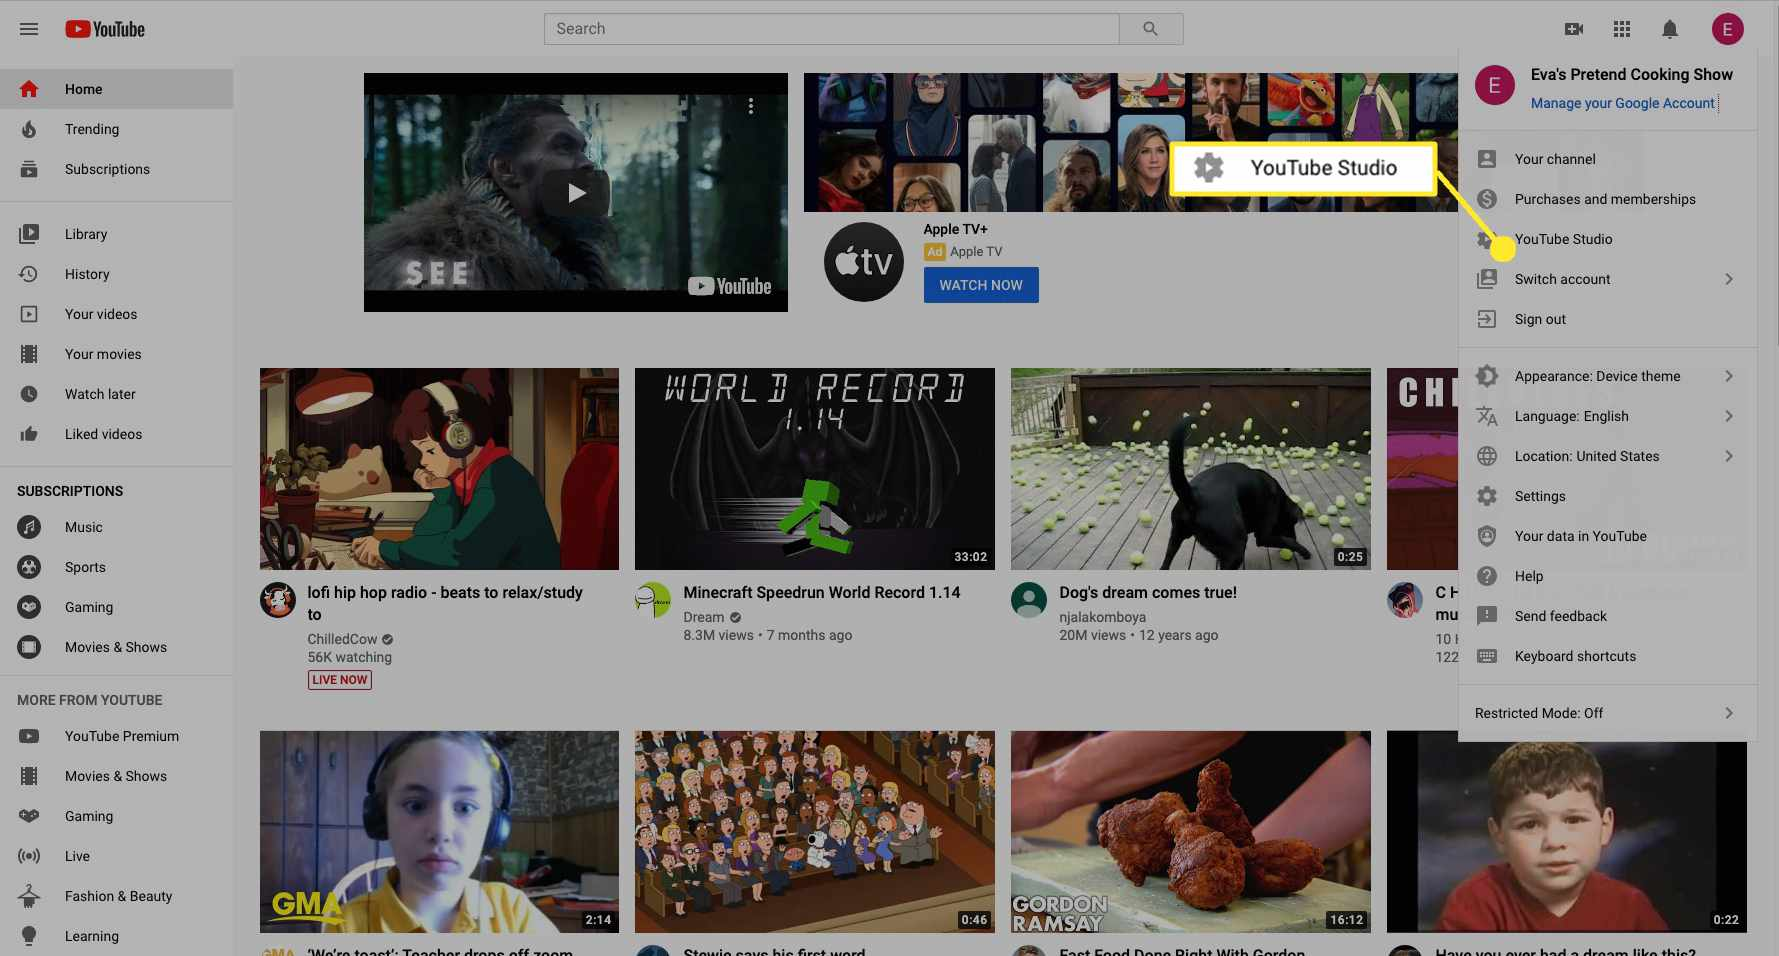 Select YouTube Studio to go to your channel's dashboard.